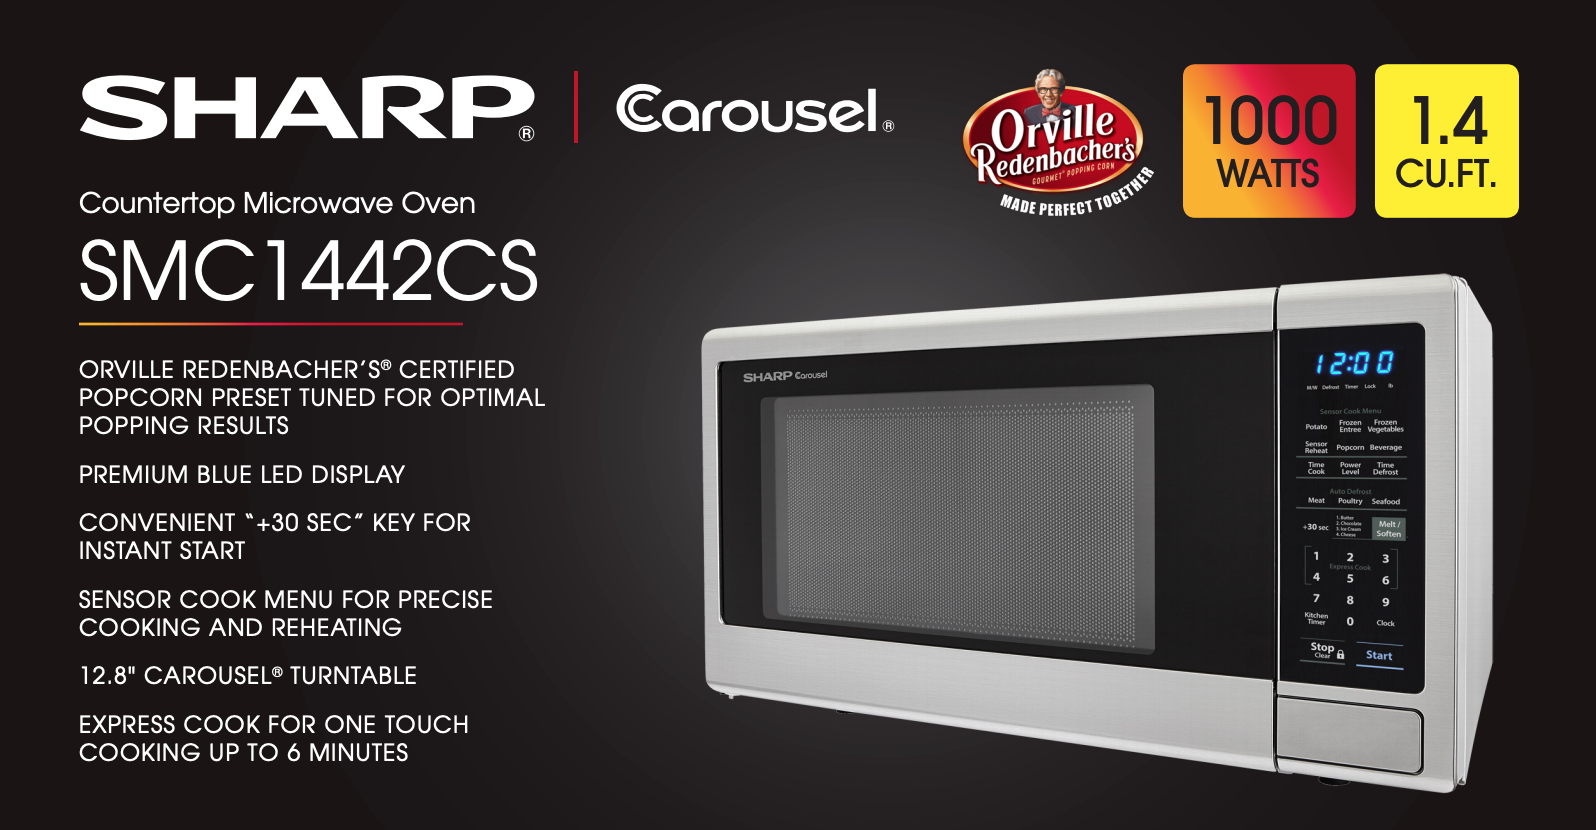 Sharp SMC1442CS Countertop Microwave Oven 1.4 cu ft  WHILE S